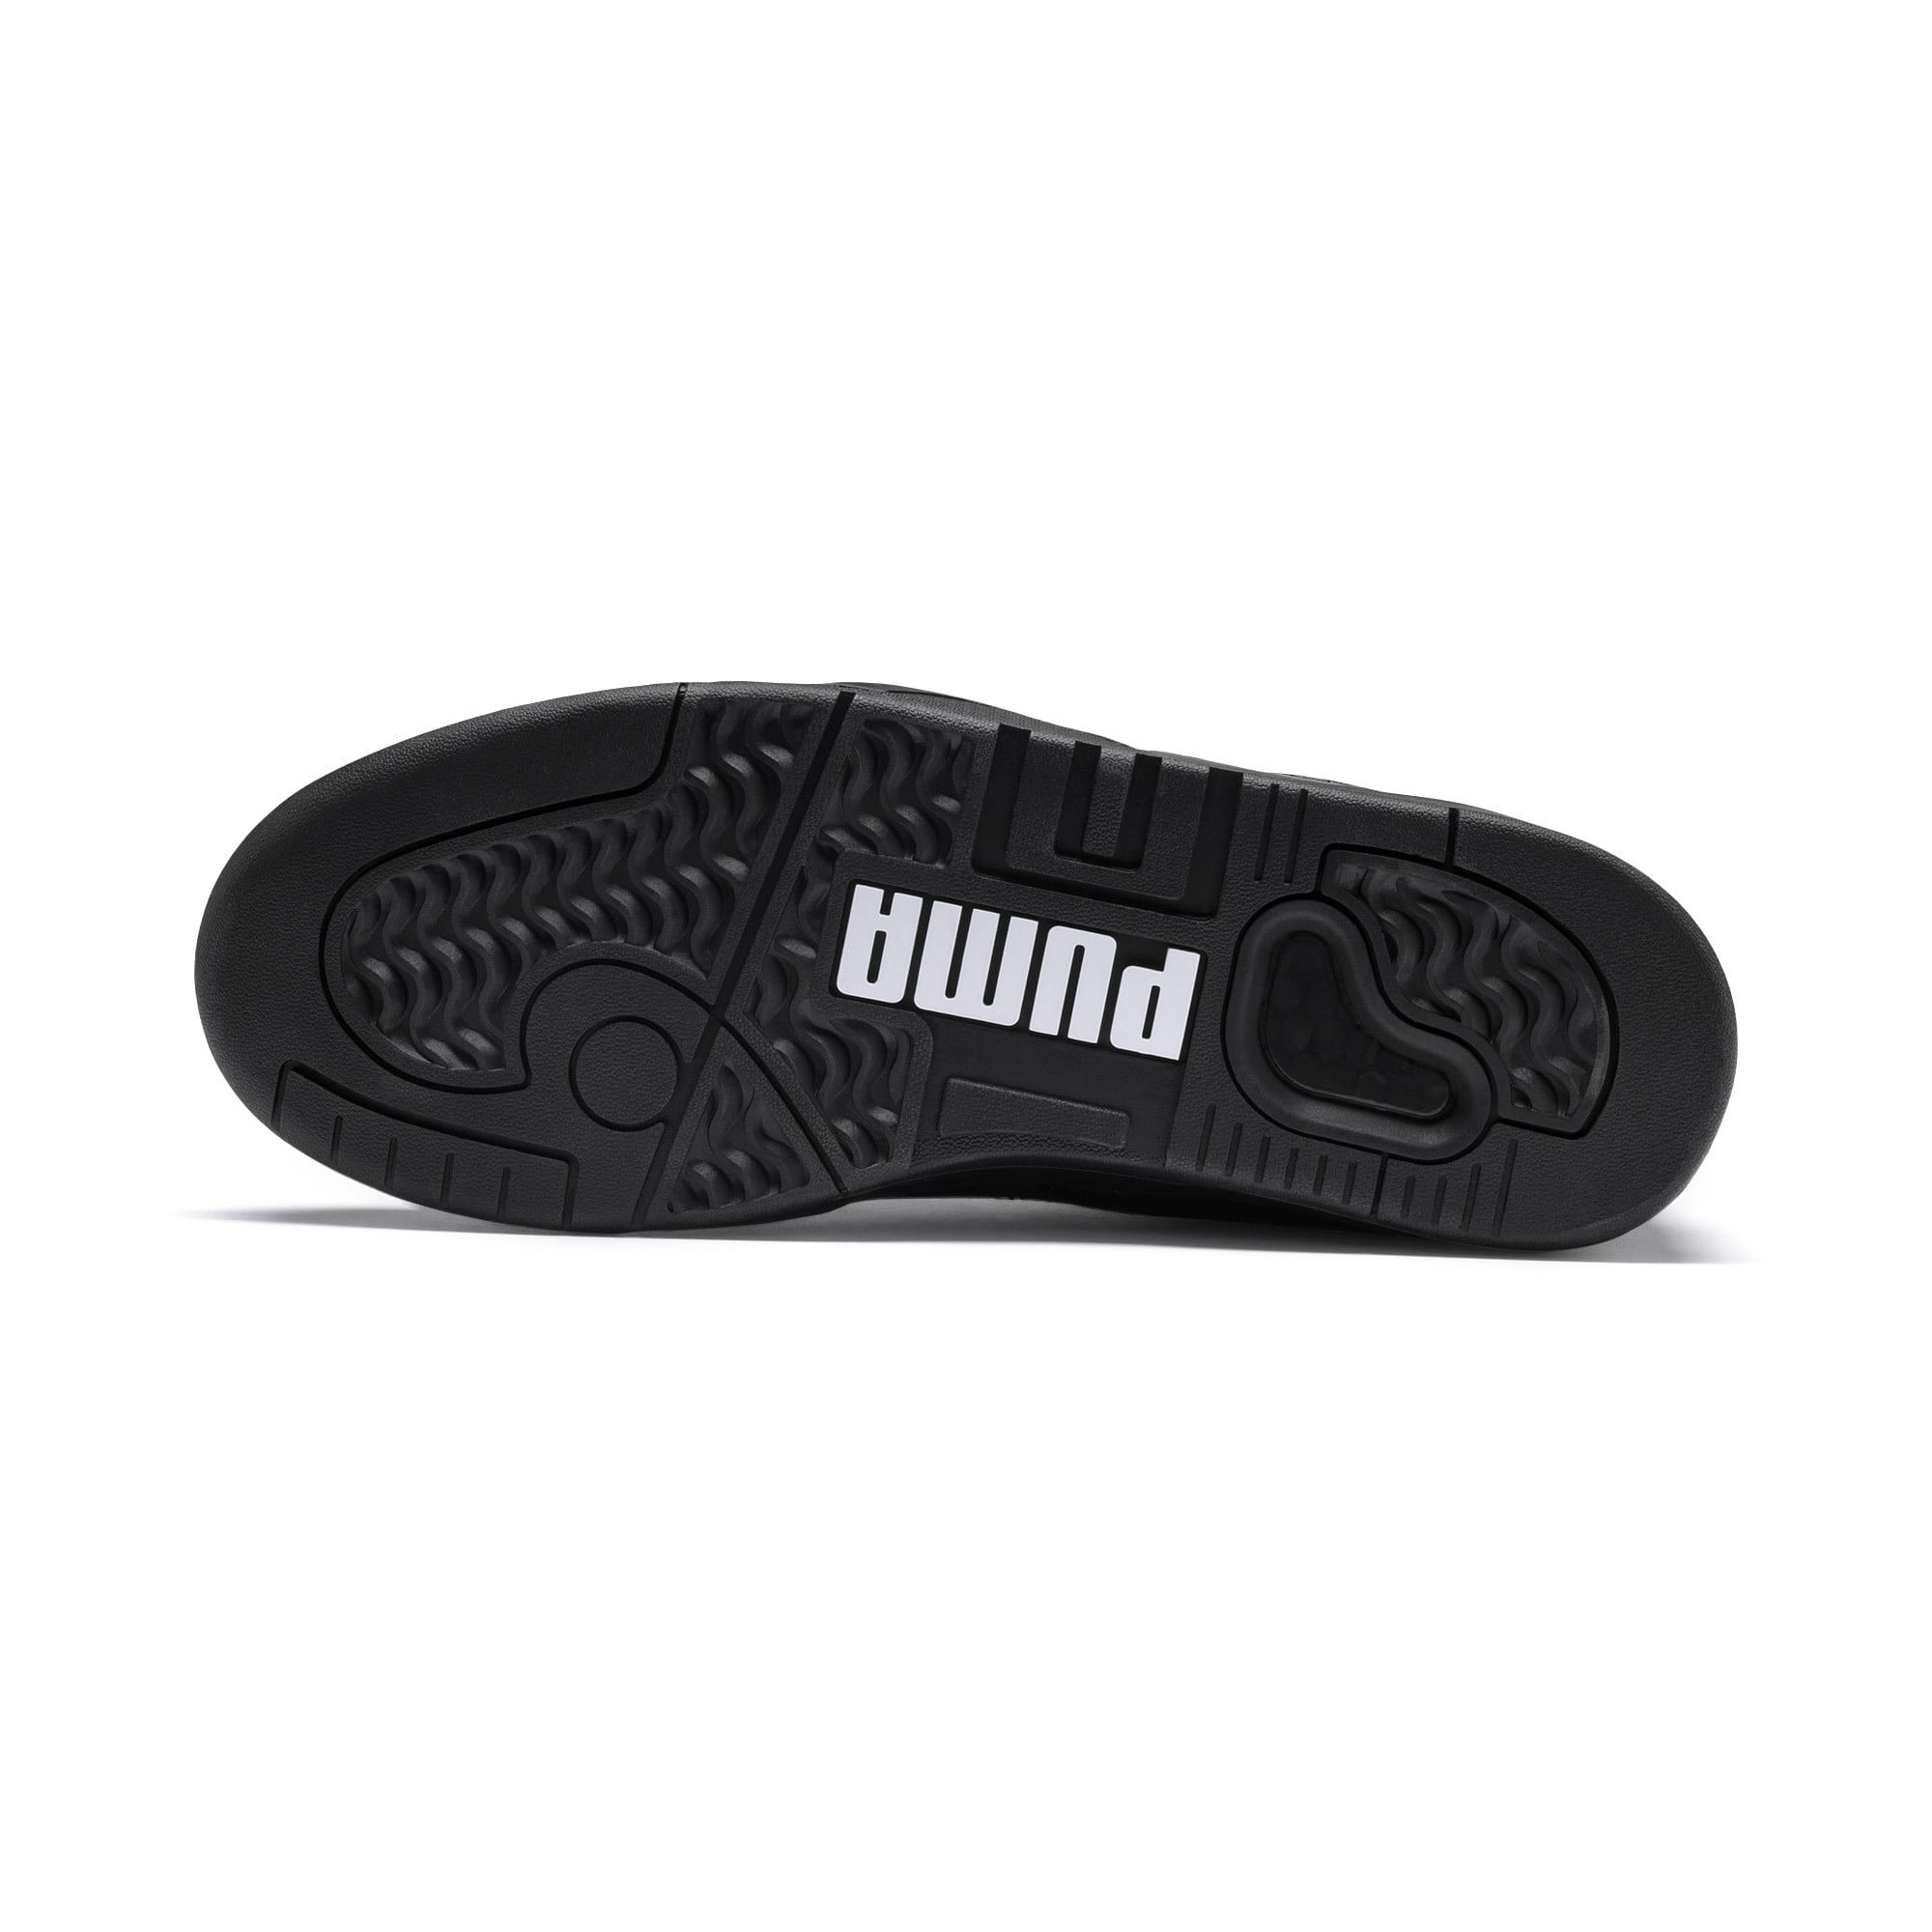 Thumbnail 4 of Palace Guard Sneakers, Puma Black-Puma White, medium